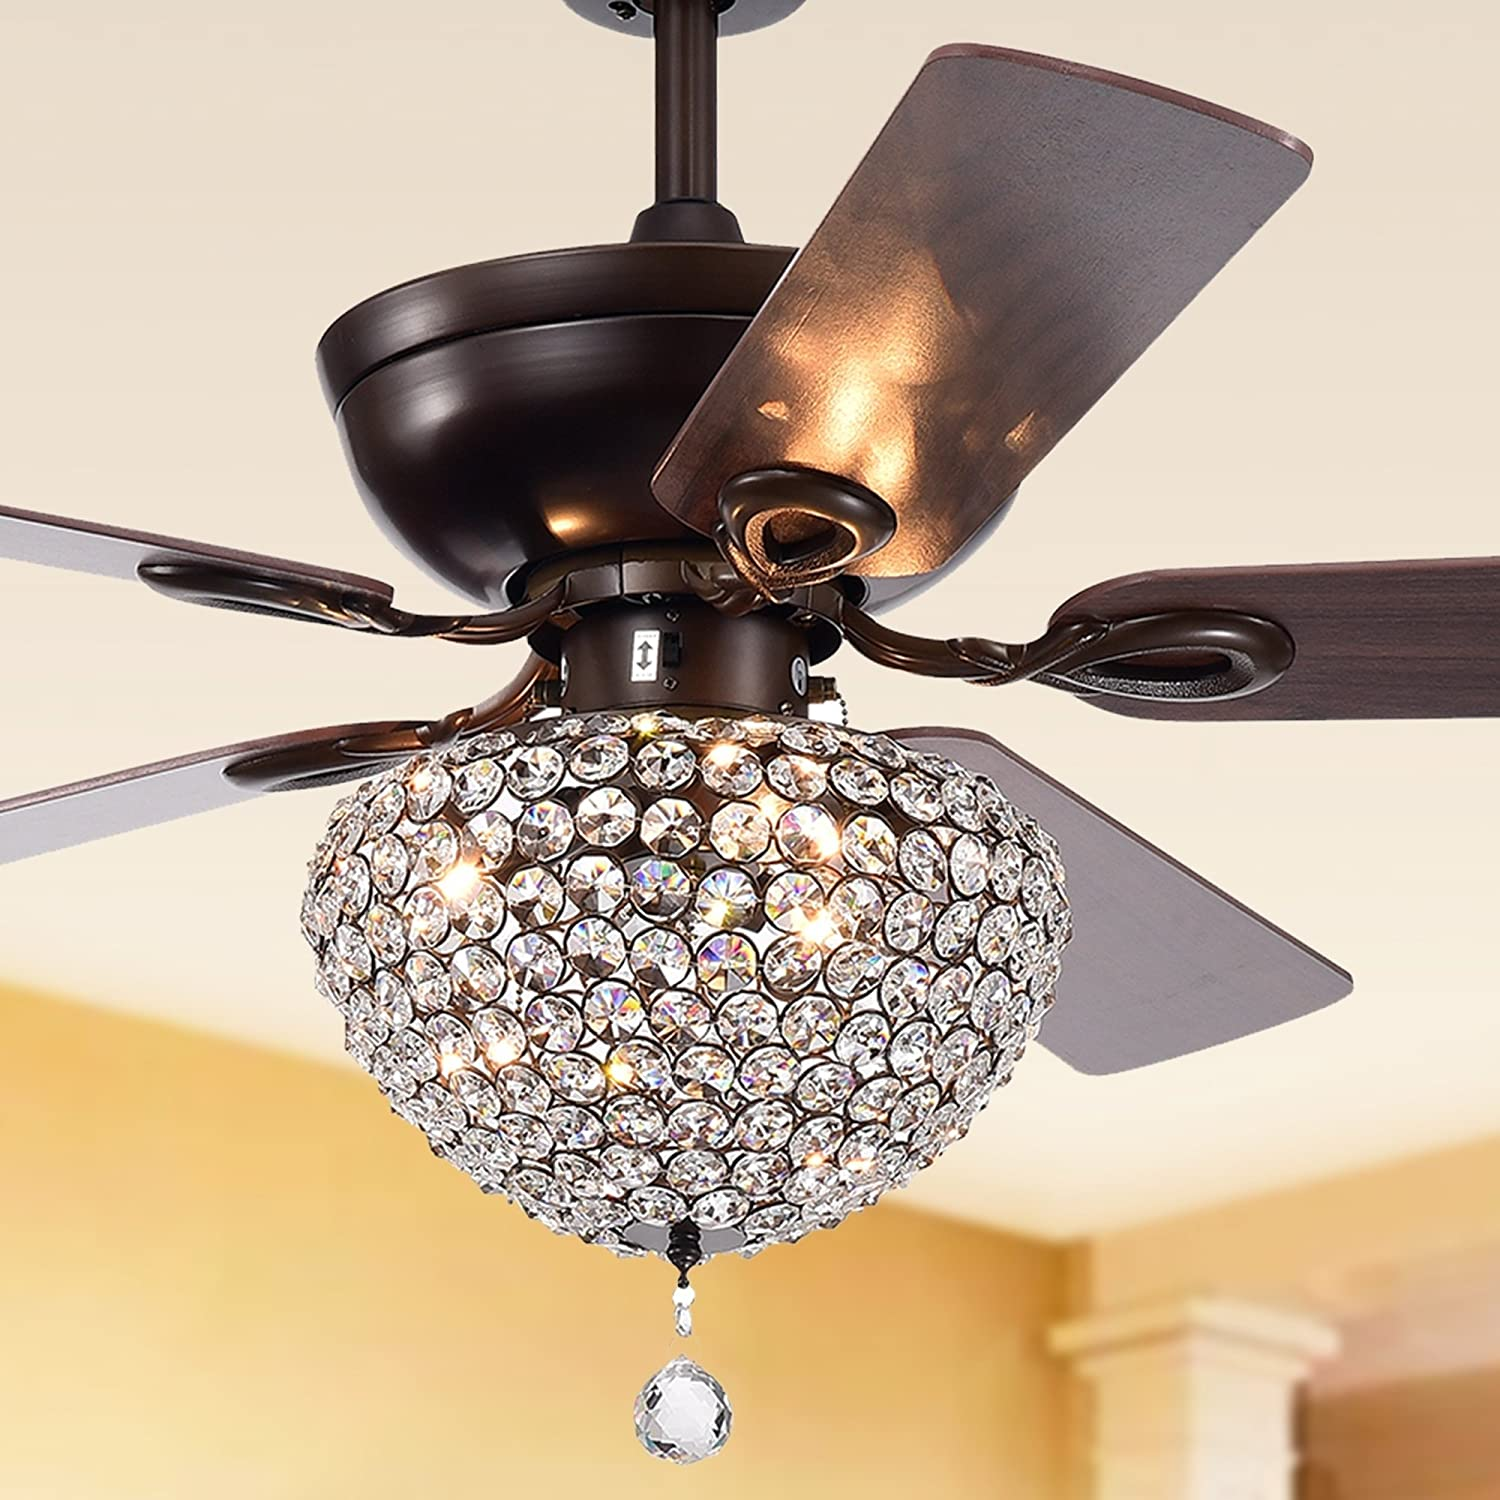 Retro 52 Inch Crystal Ceiling Fan Light Matte Black Finish